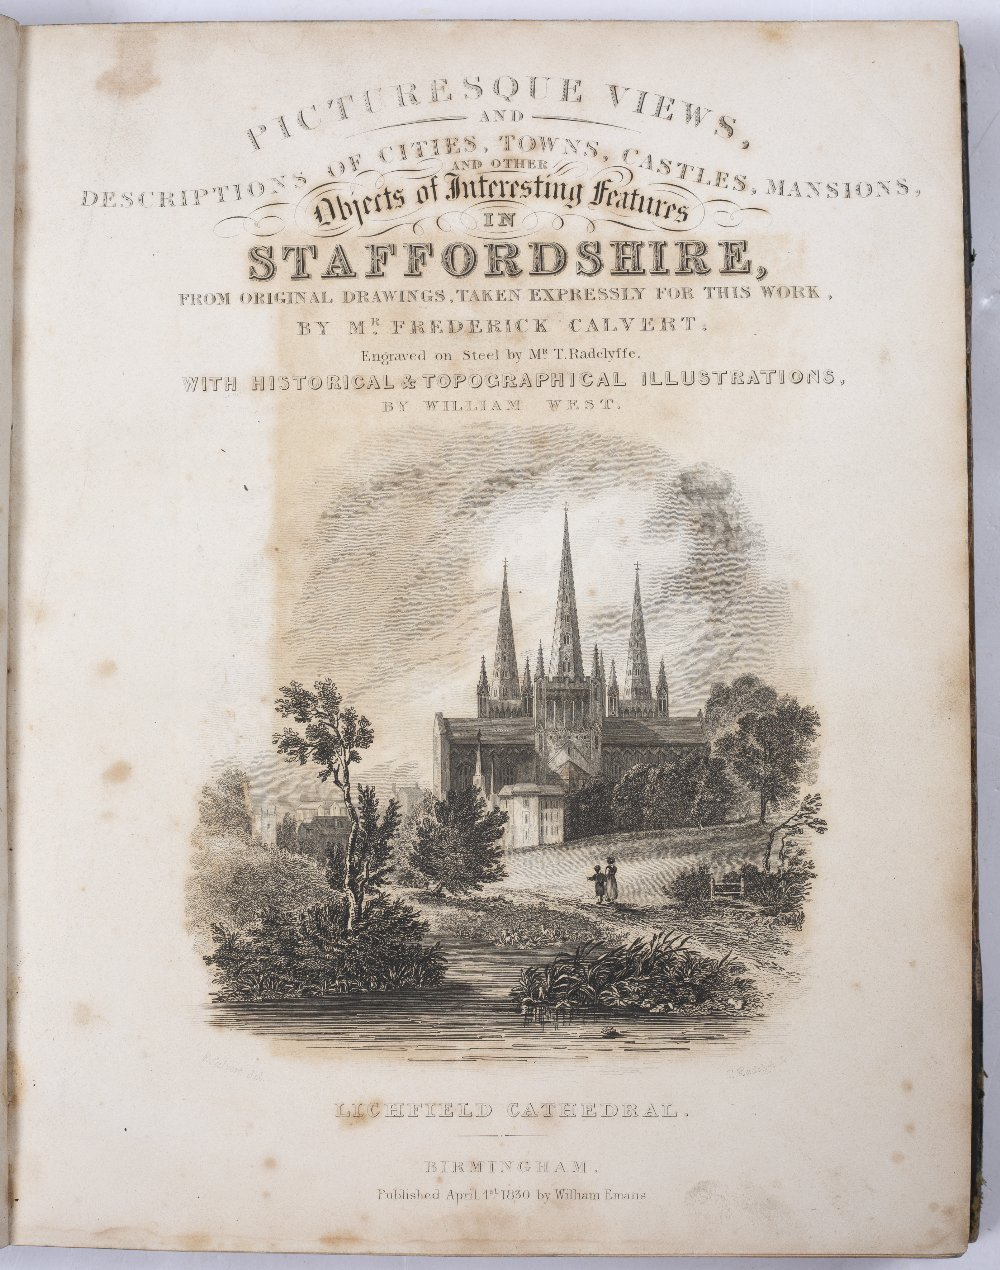 CALVERT, Frederick, illus. 'Picturesque Views and Descriptions of Cities, Towns, Castles, Mansions - Image 3 of 3